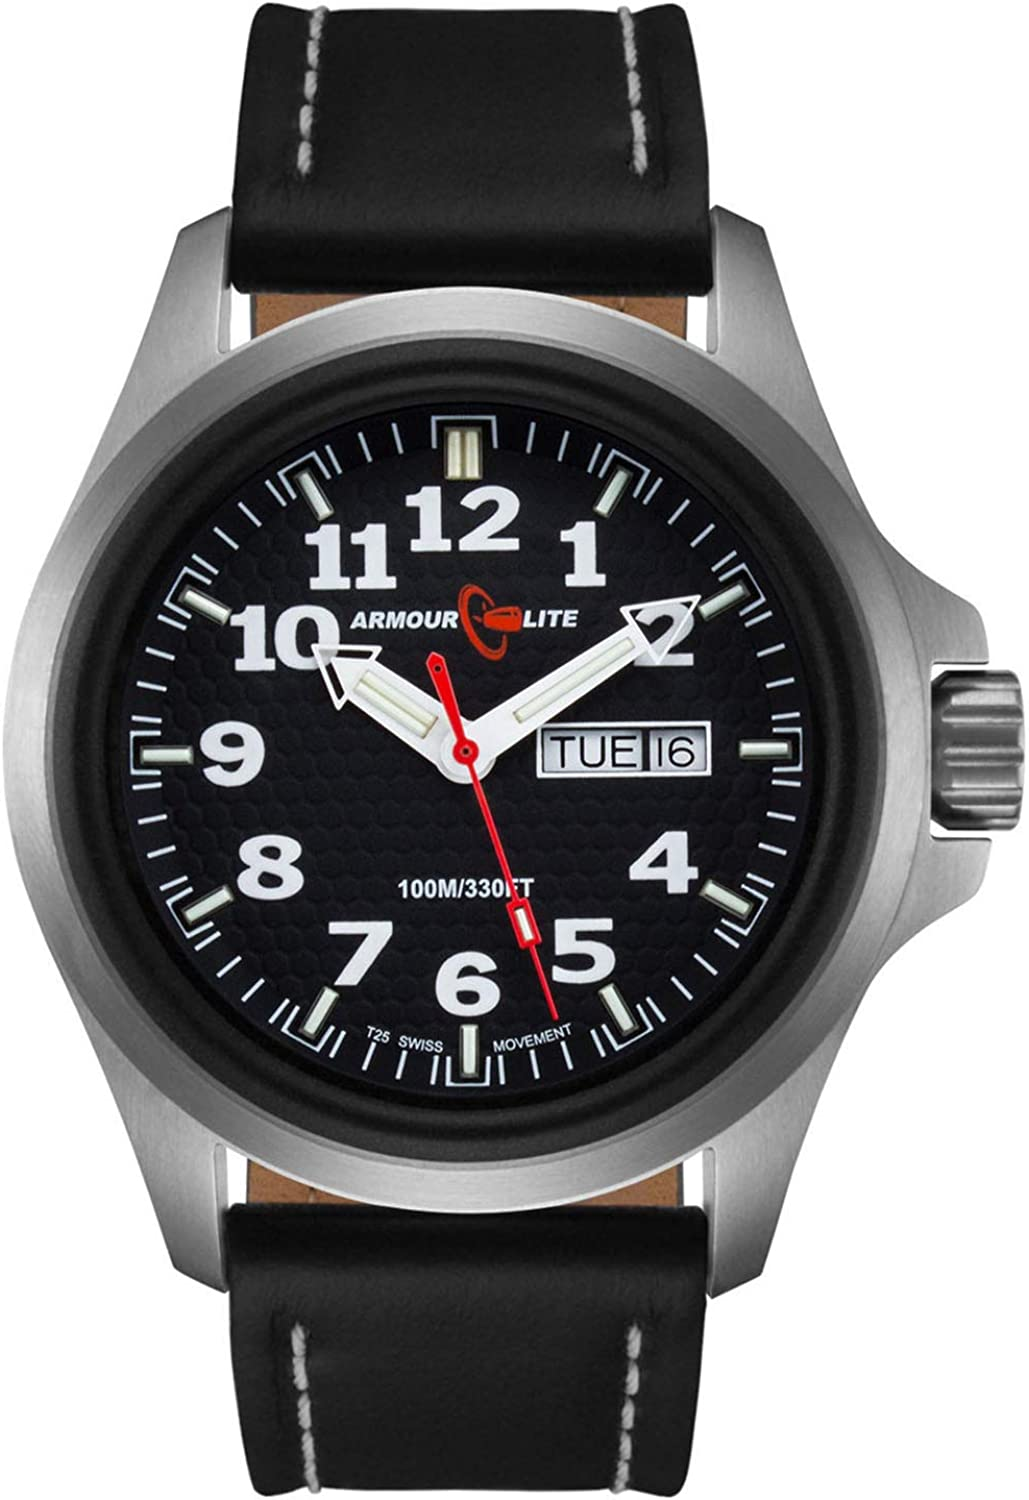 Armourlite Officer Series AL801 Watch – Black Dial – Black Leather Band